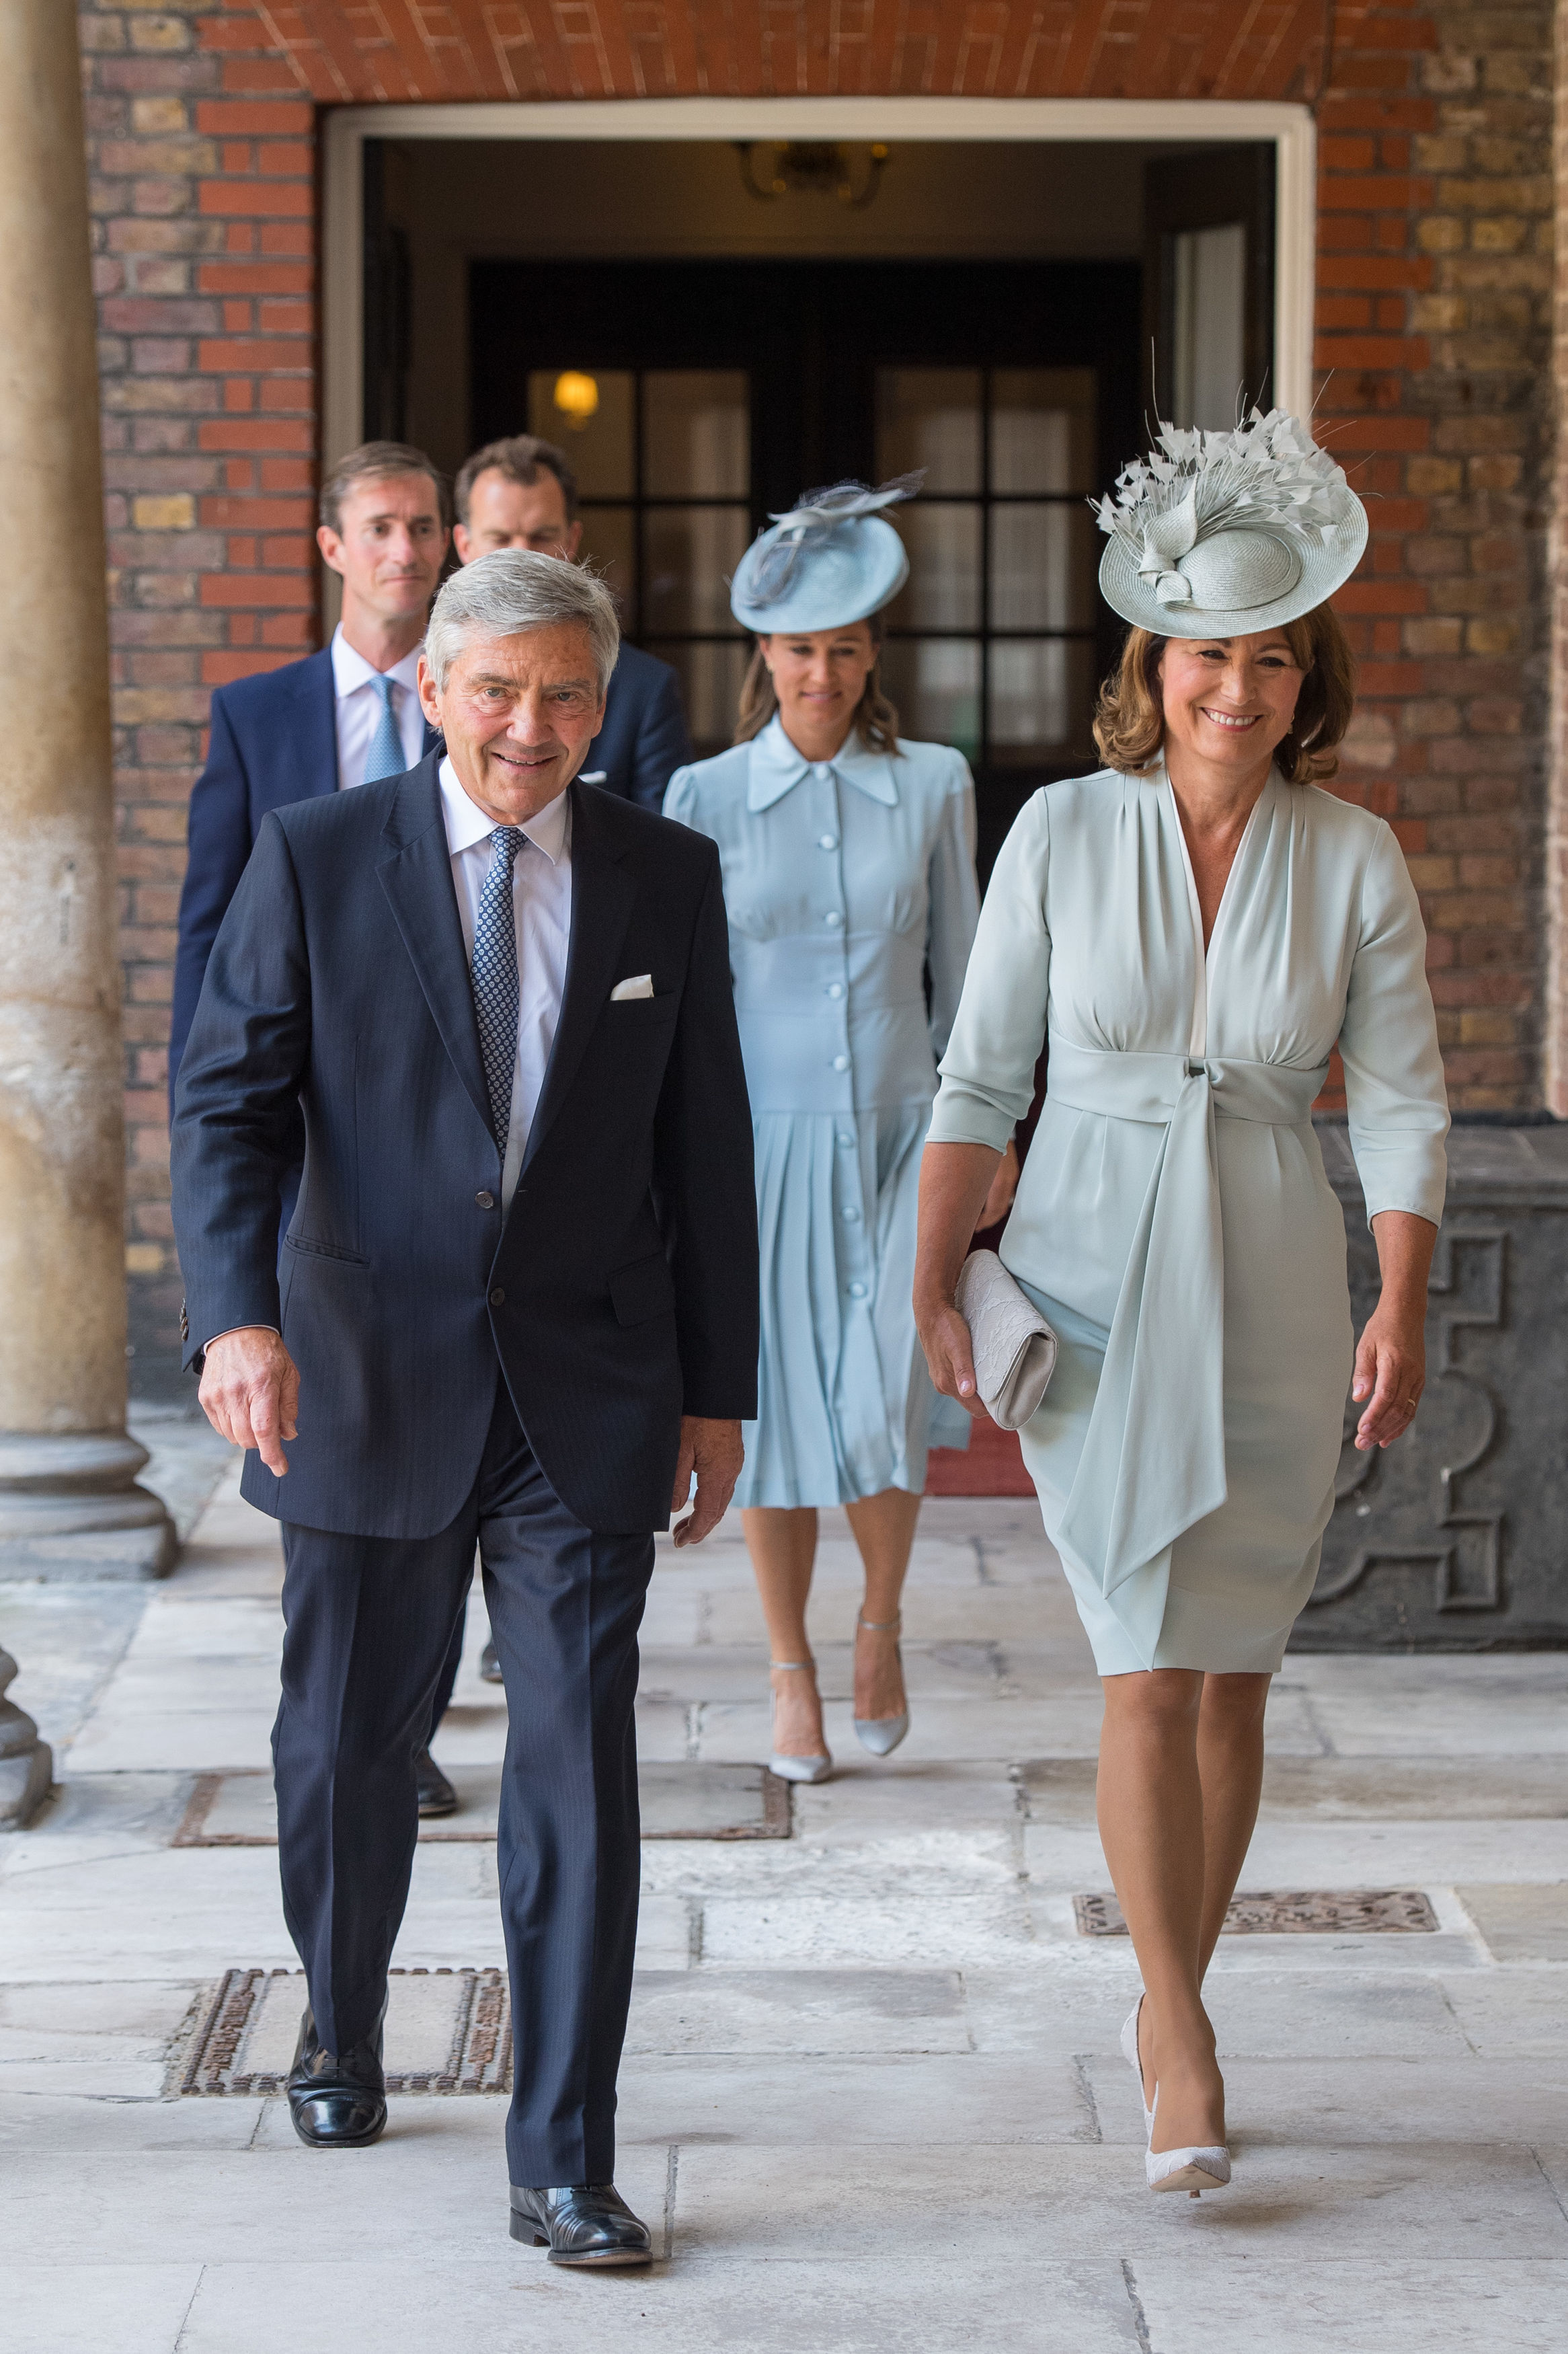 Michael Middleton and Carole Middleton, parents of the Duchess of Cambridge (Source: Getty Images)